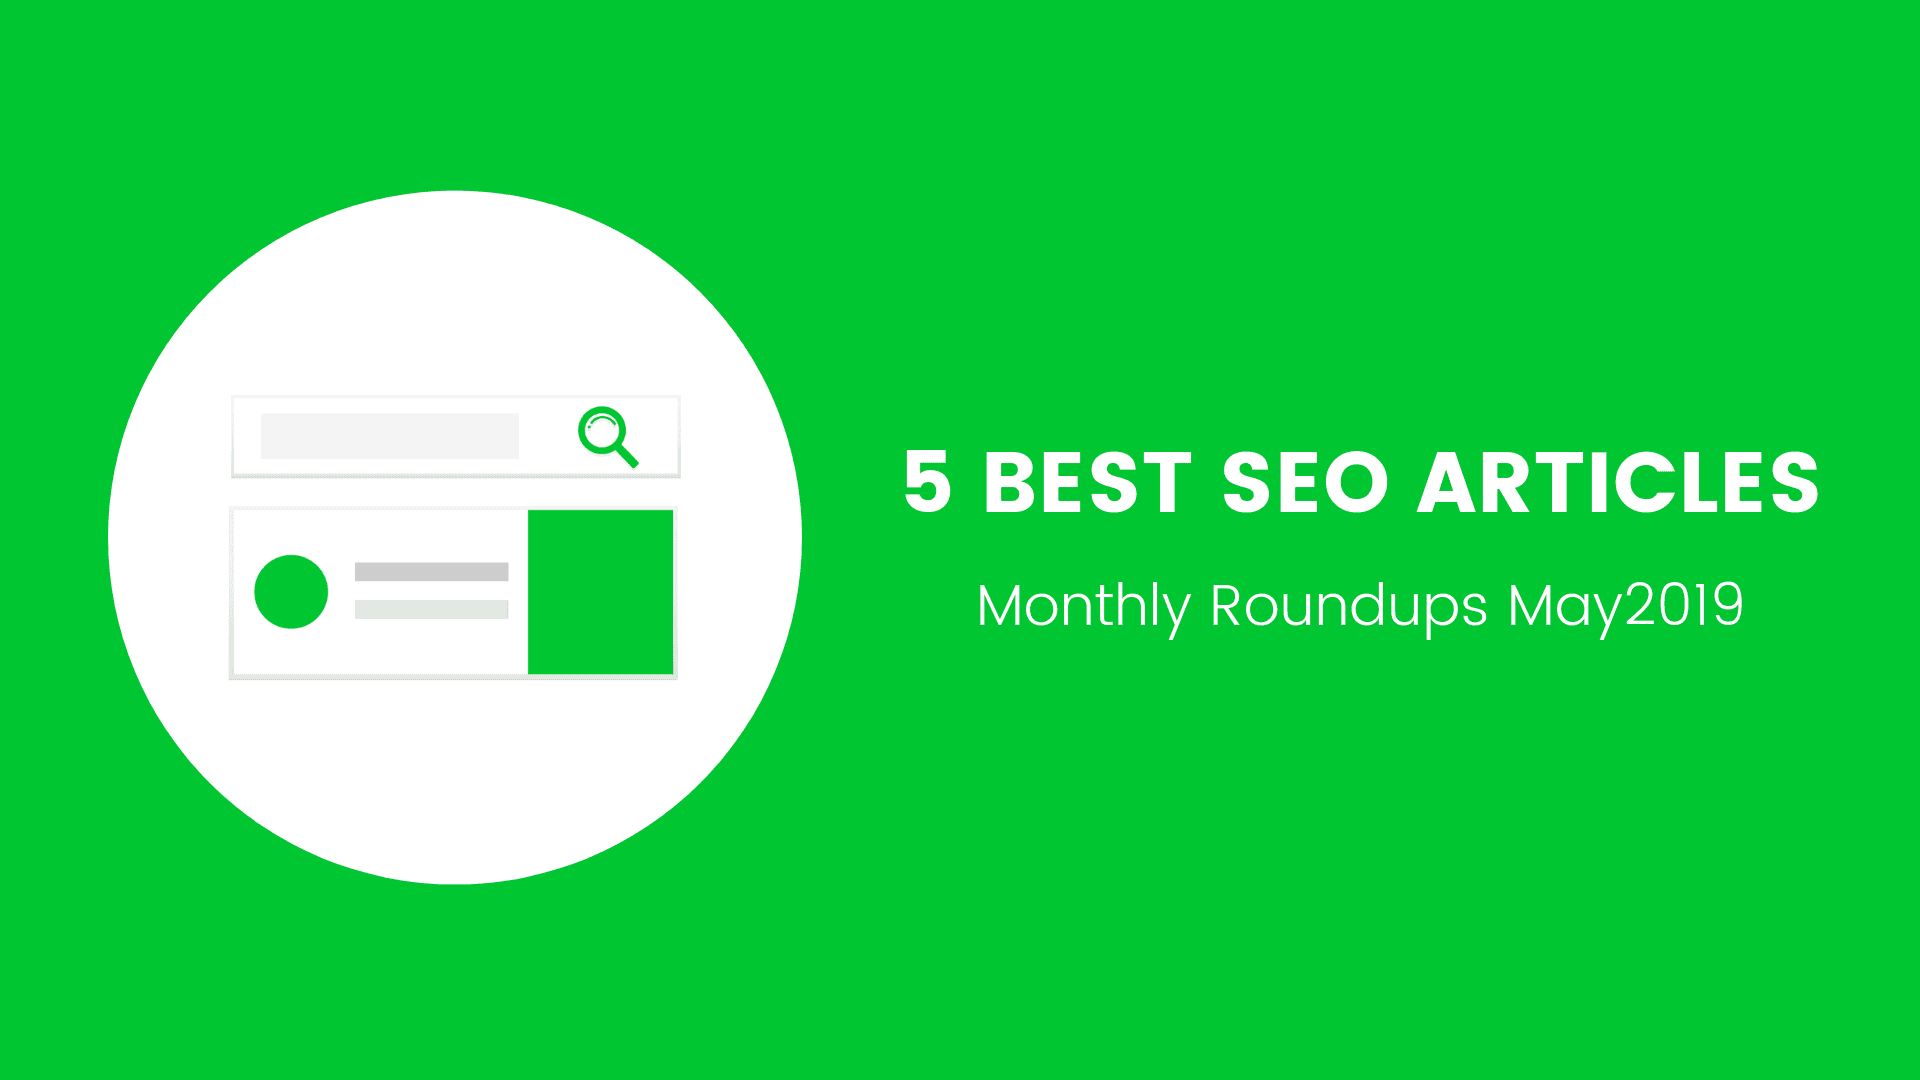 5-best-seo-articles-of-may-2019